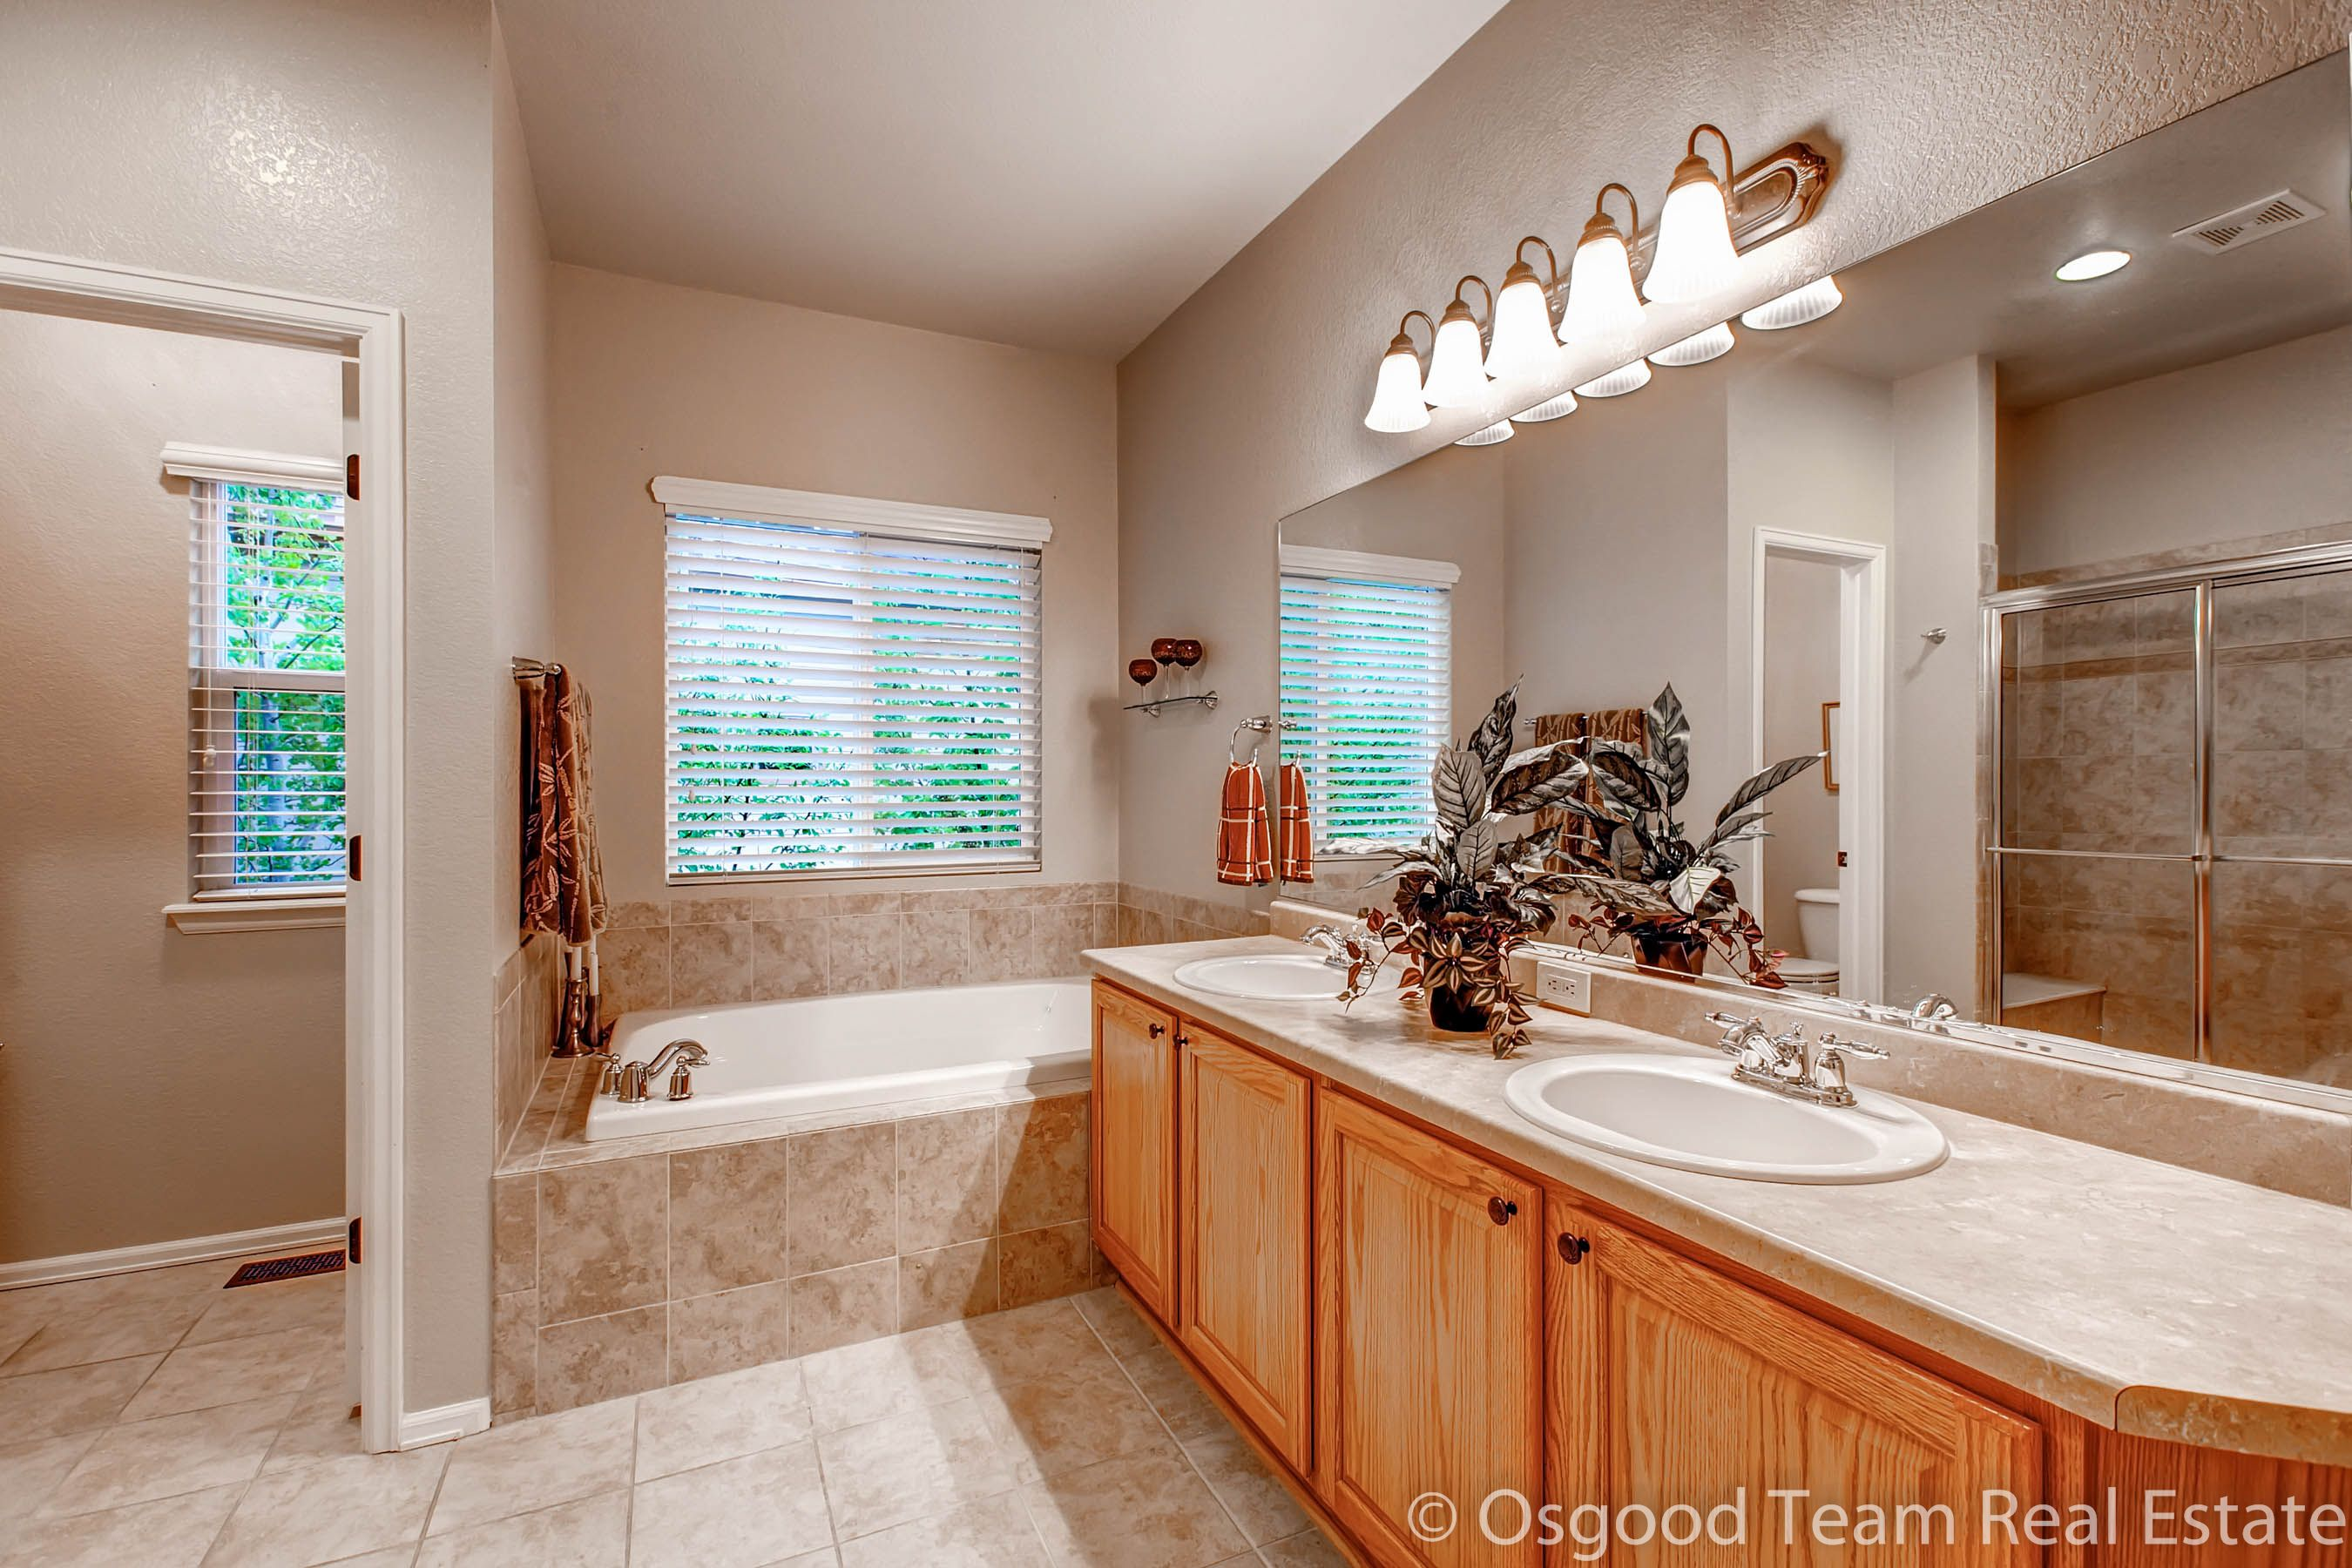 Master Ensuite Bathroom - 5 pc with double sinks, large soaking tub ...